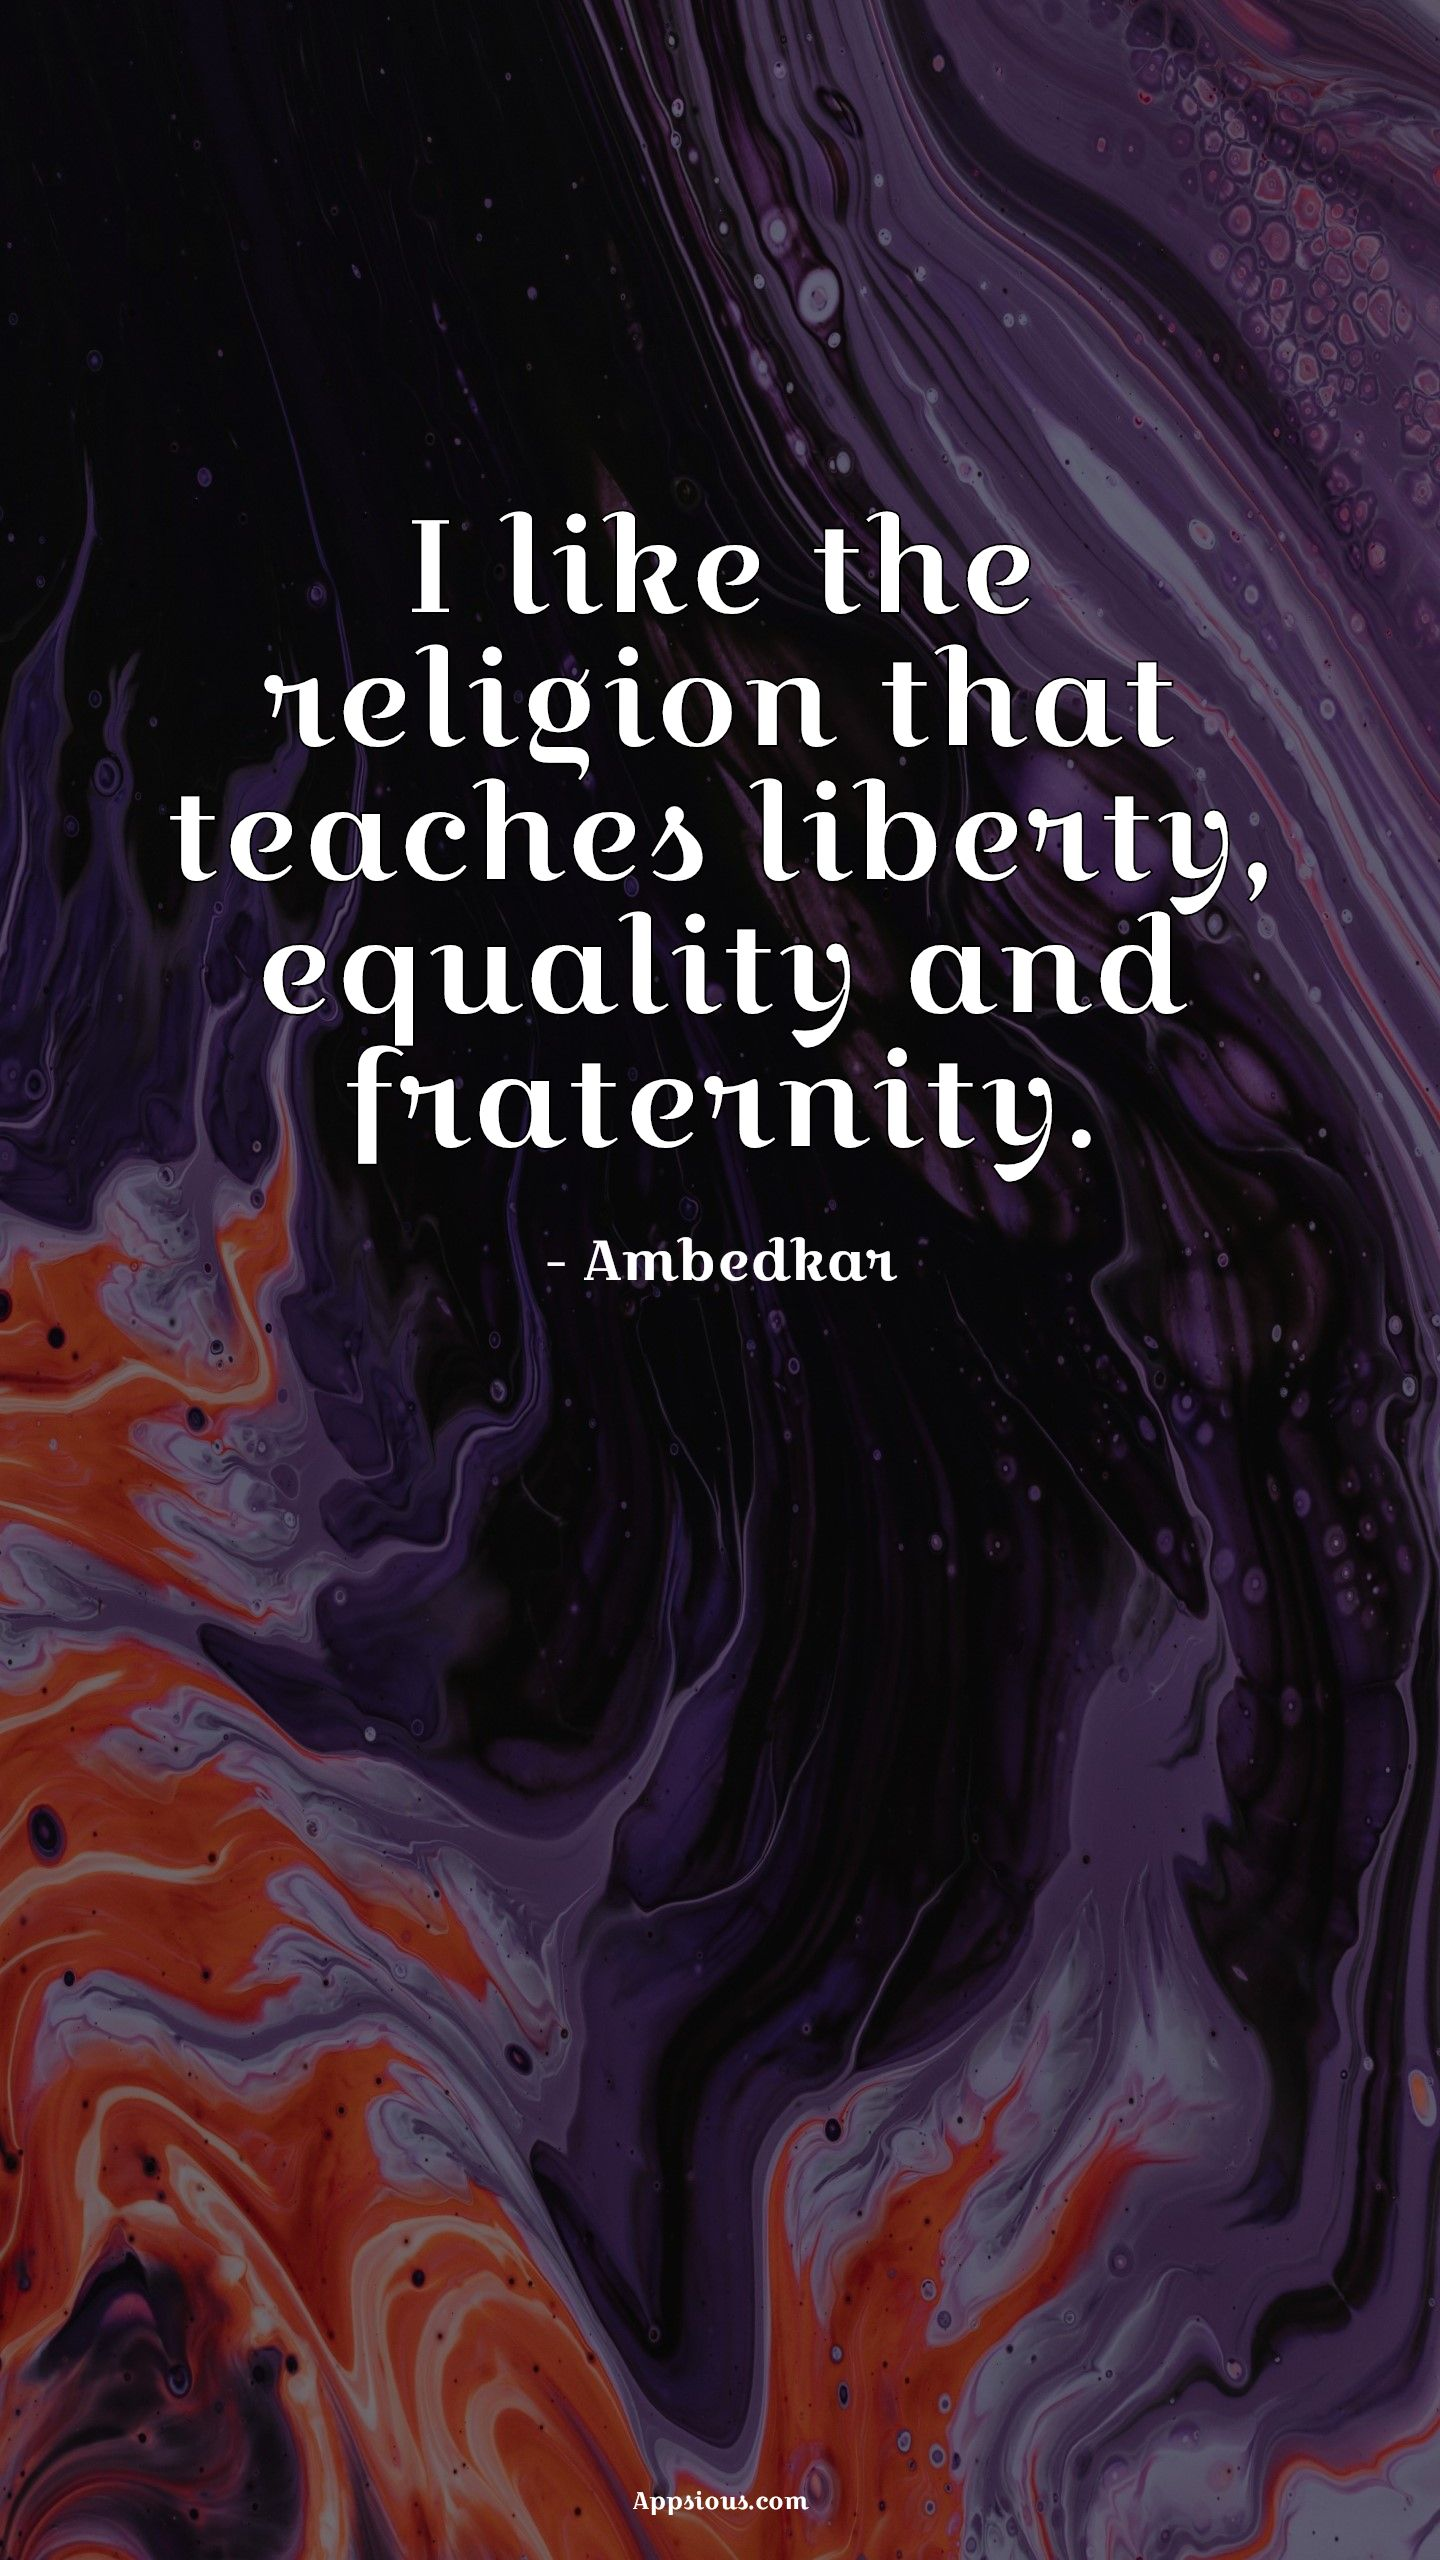 I like the religion that teaches liberty, equality and fraternity.